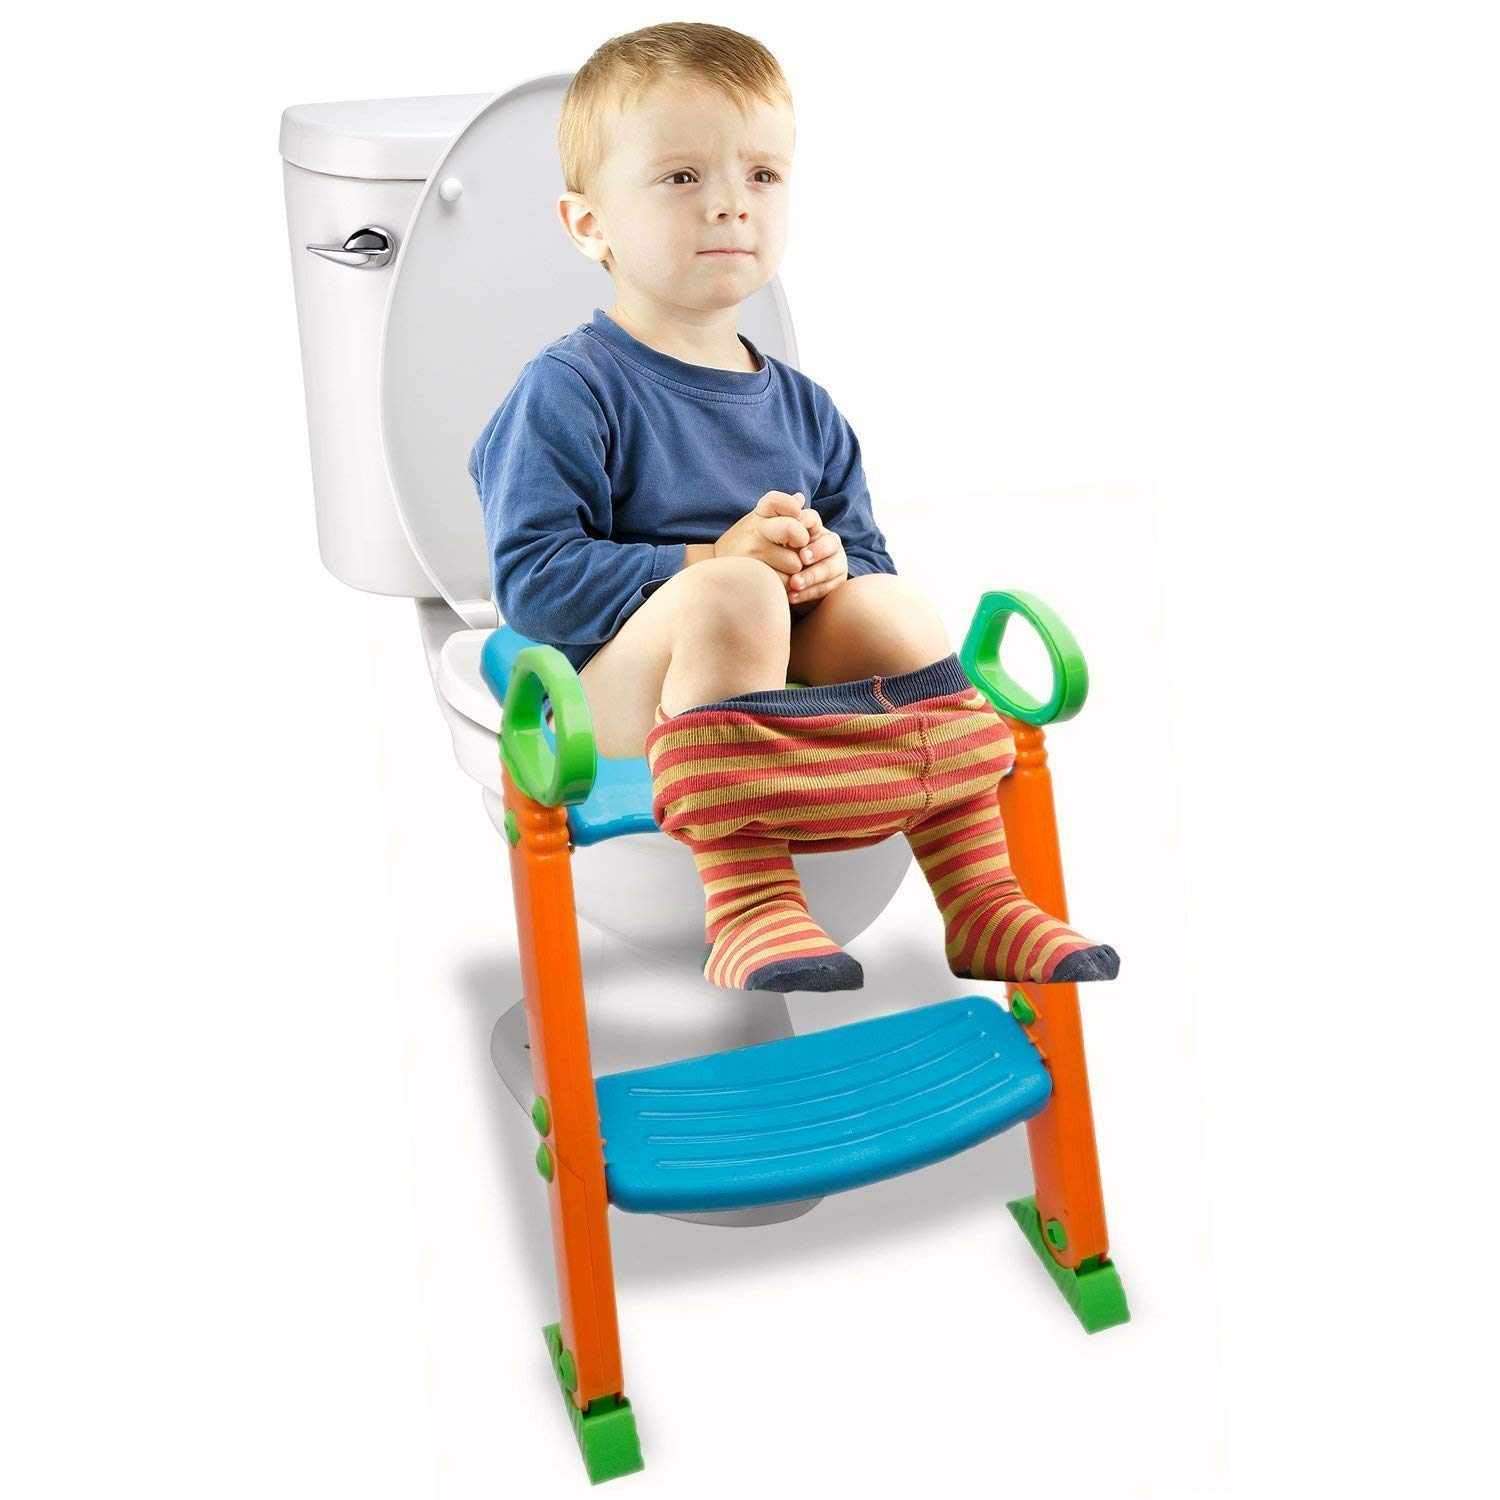 Potty Toilet Seat with Step Stool ladder, (3 in 1) Trainer for Kids Toddlers W/ Handles. Sturdy, Comfortable, Safe, Built In Non-Slip Steps W/ Anti-Slip Pads. Excellent Potty Seat Step Boys Girls Baby by Alayna (Image #2)